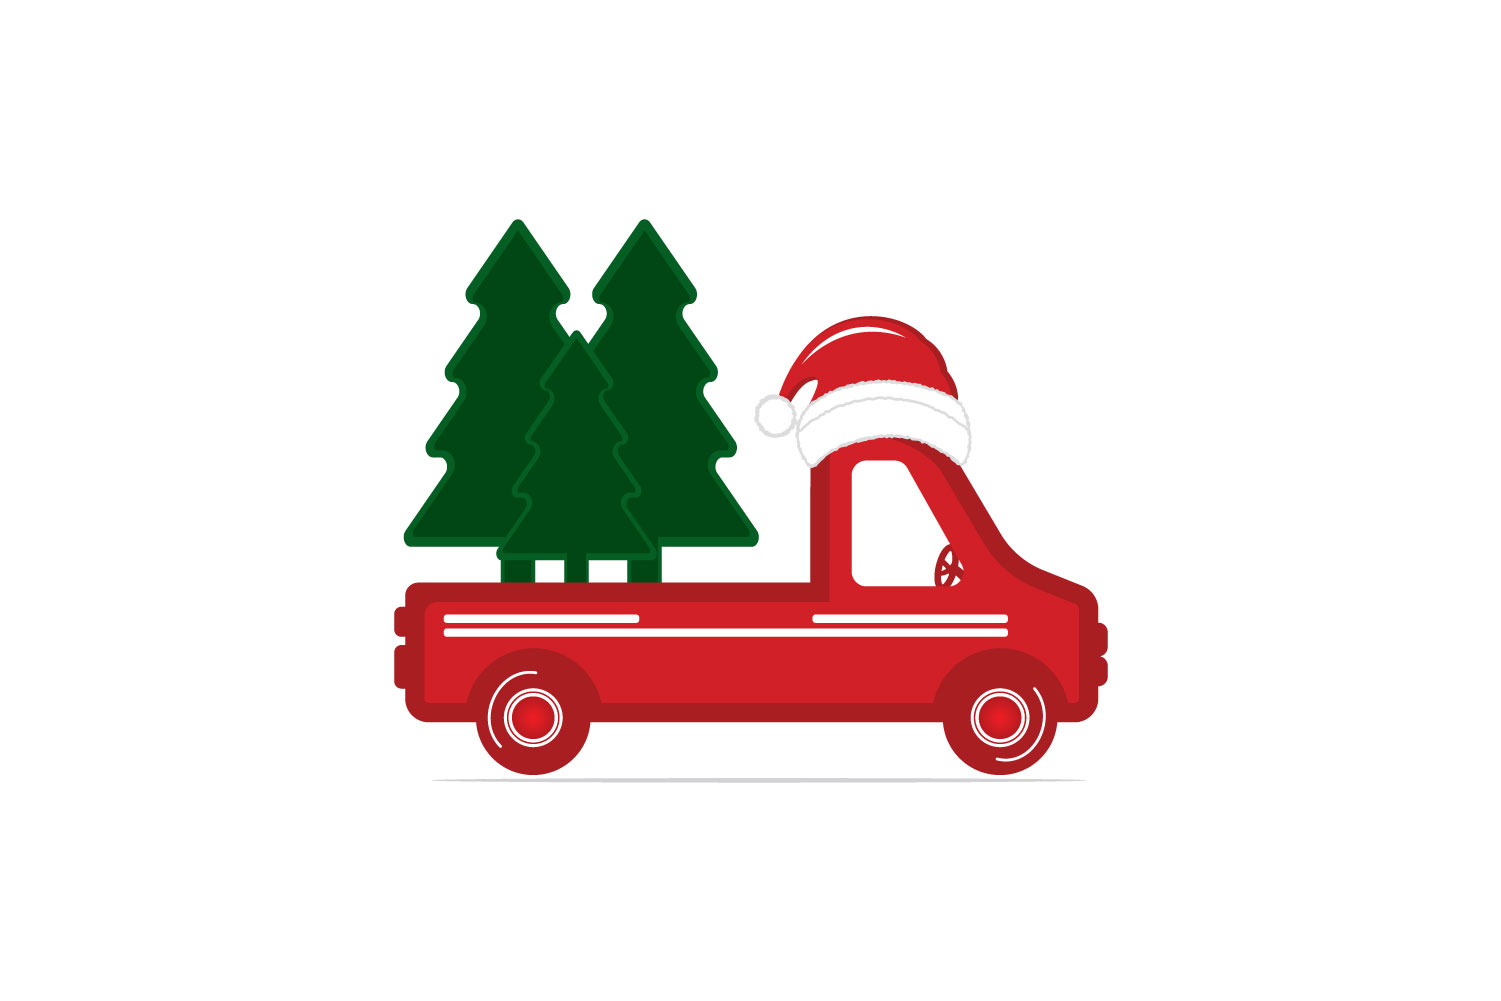 Christmas truck back with tree svg, dxf, pdf, jpeg, png file example image 2